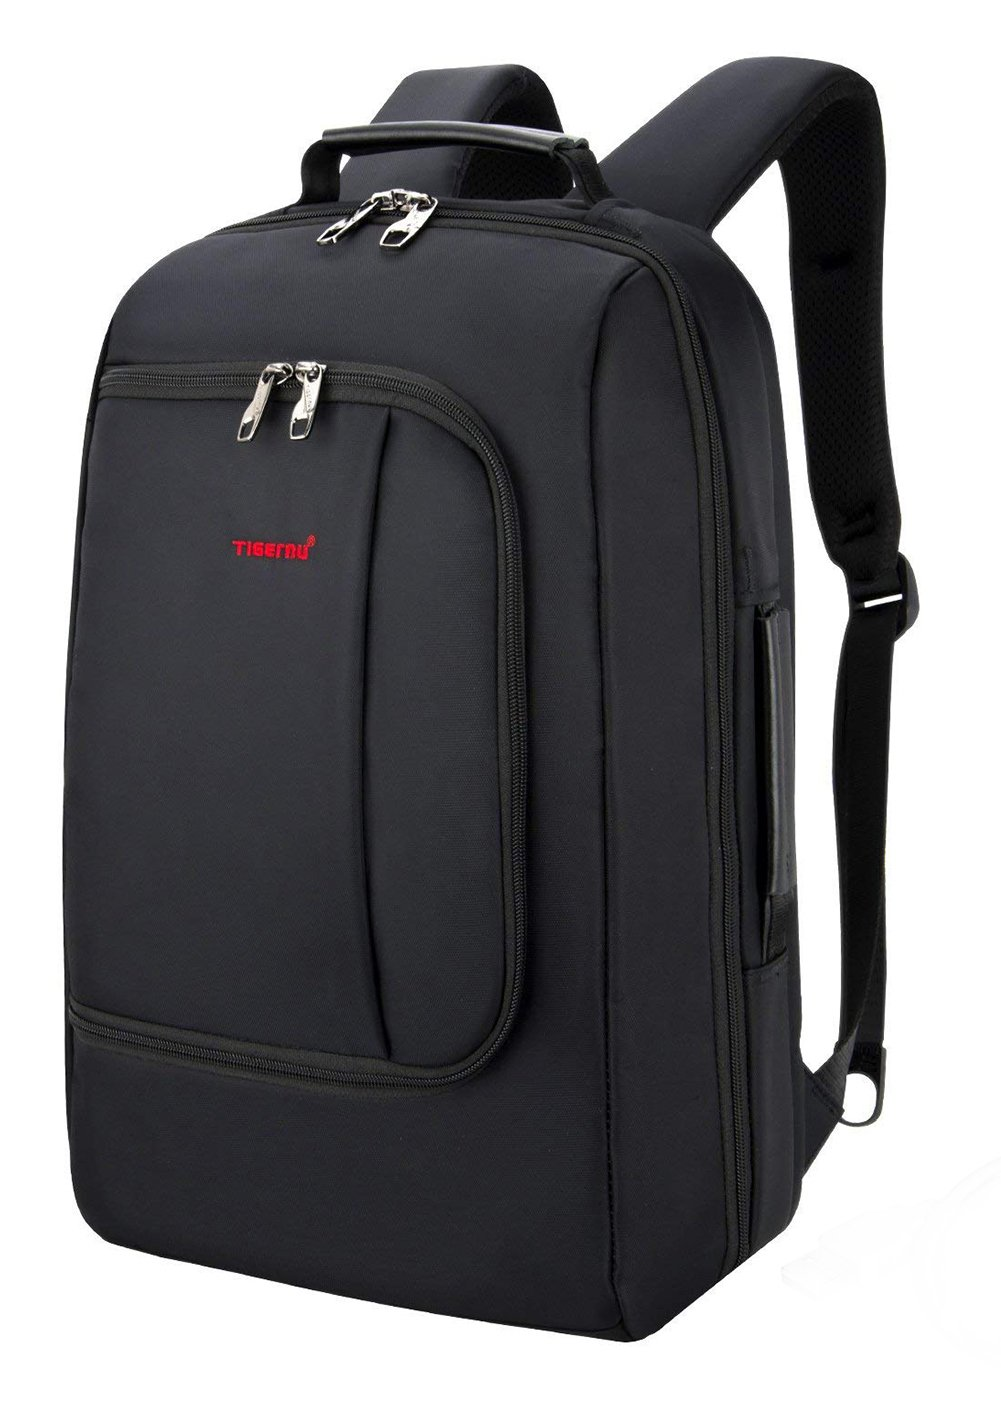 TIGERNU Slim Business Backpack with USB Charging Port Convertible Water Resistence Carry on Travel Bag with Luggage Strap Fits 15 15.6 Inch Laptops For Men Women Black